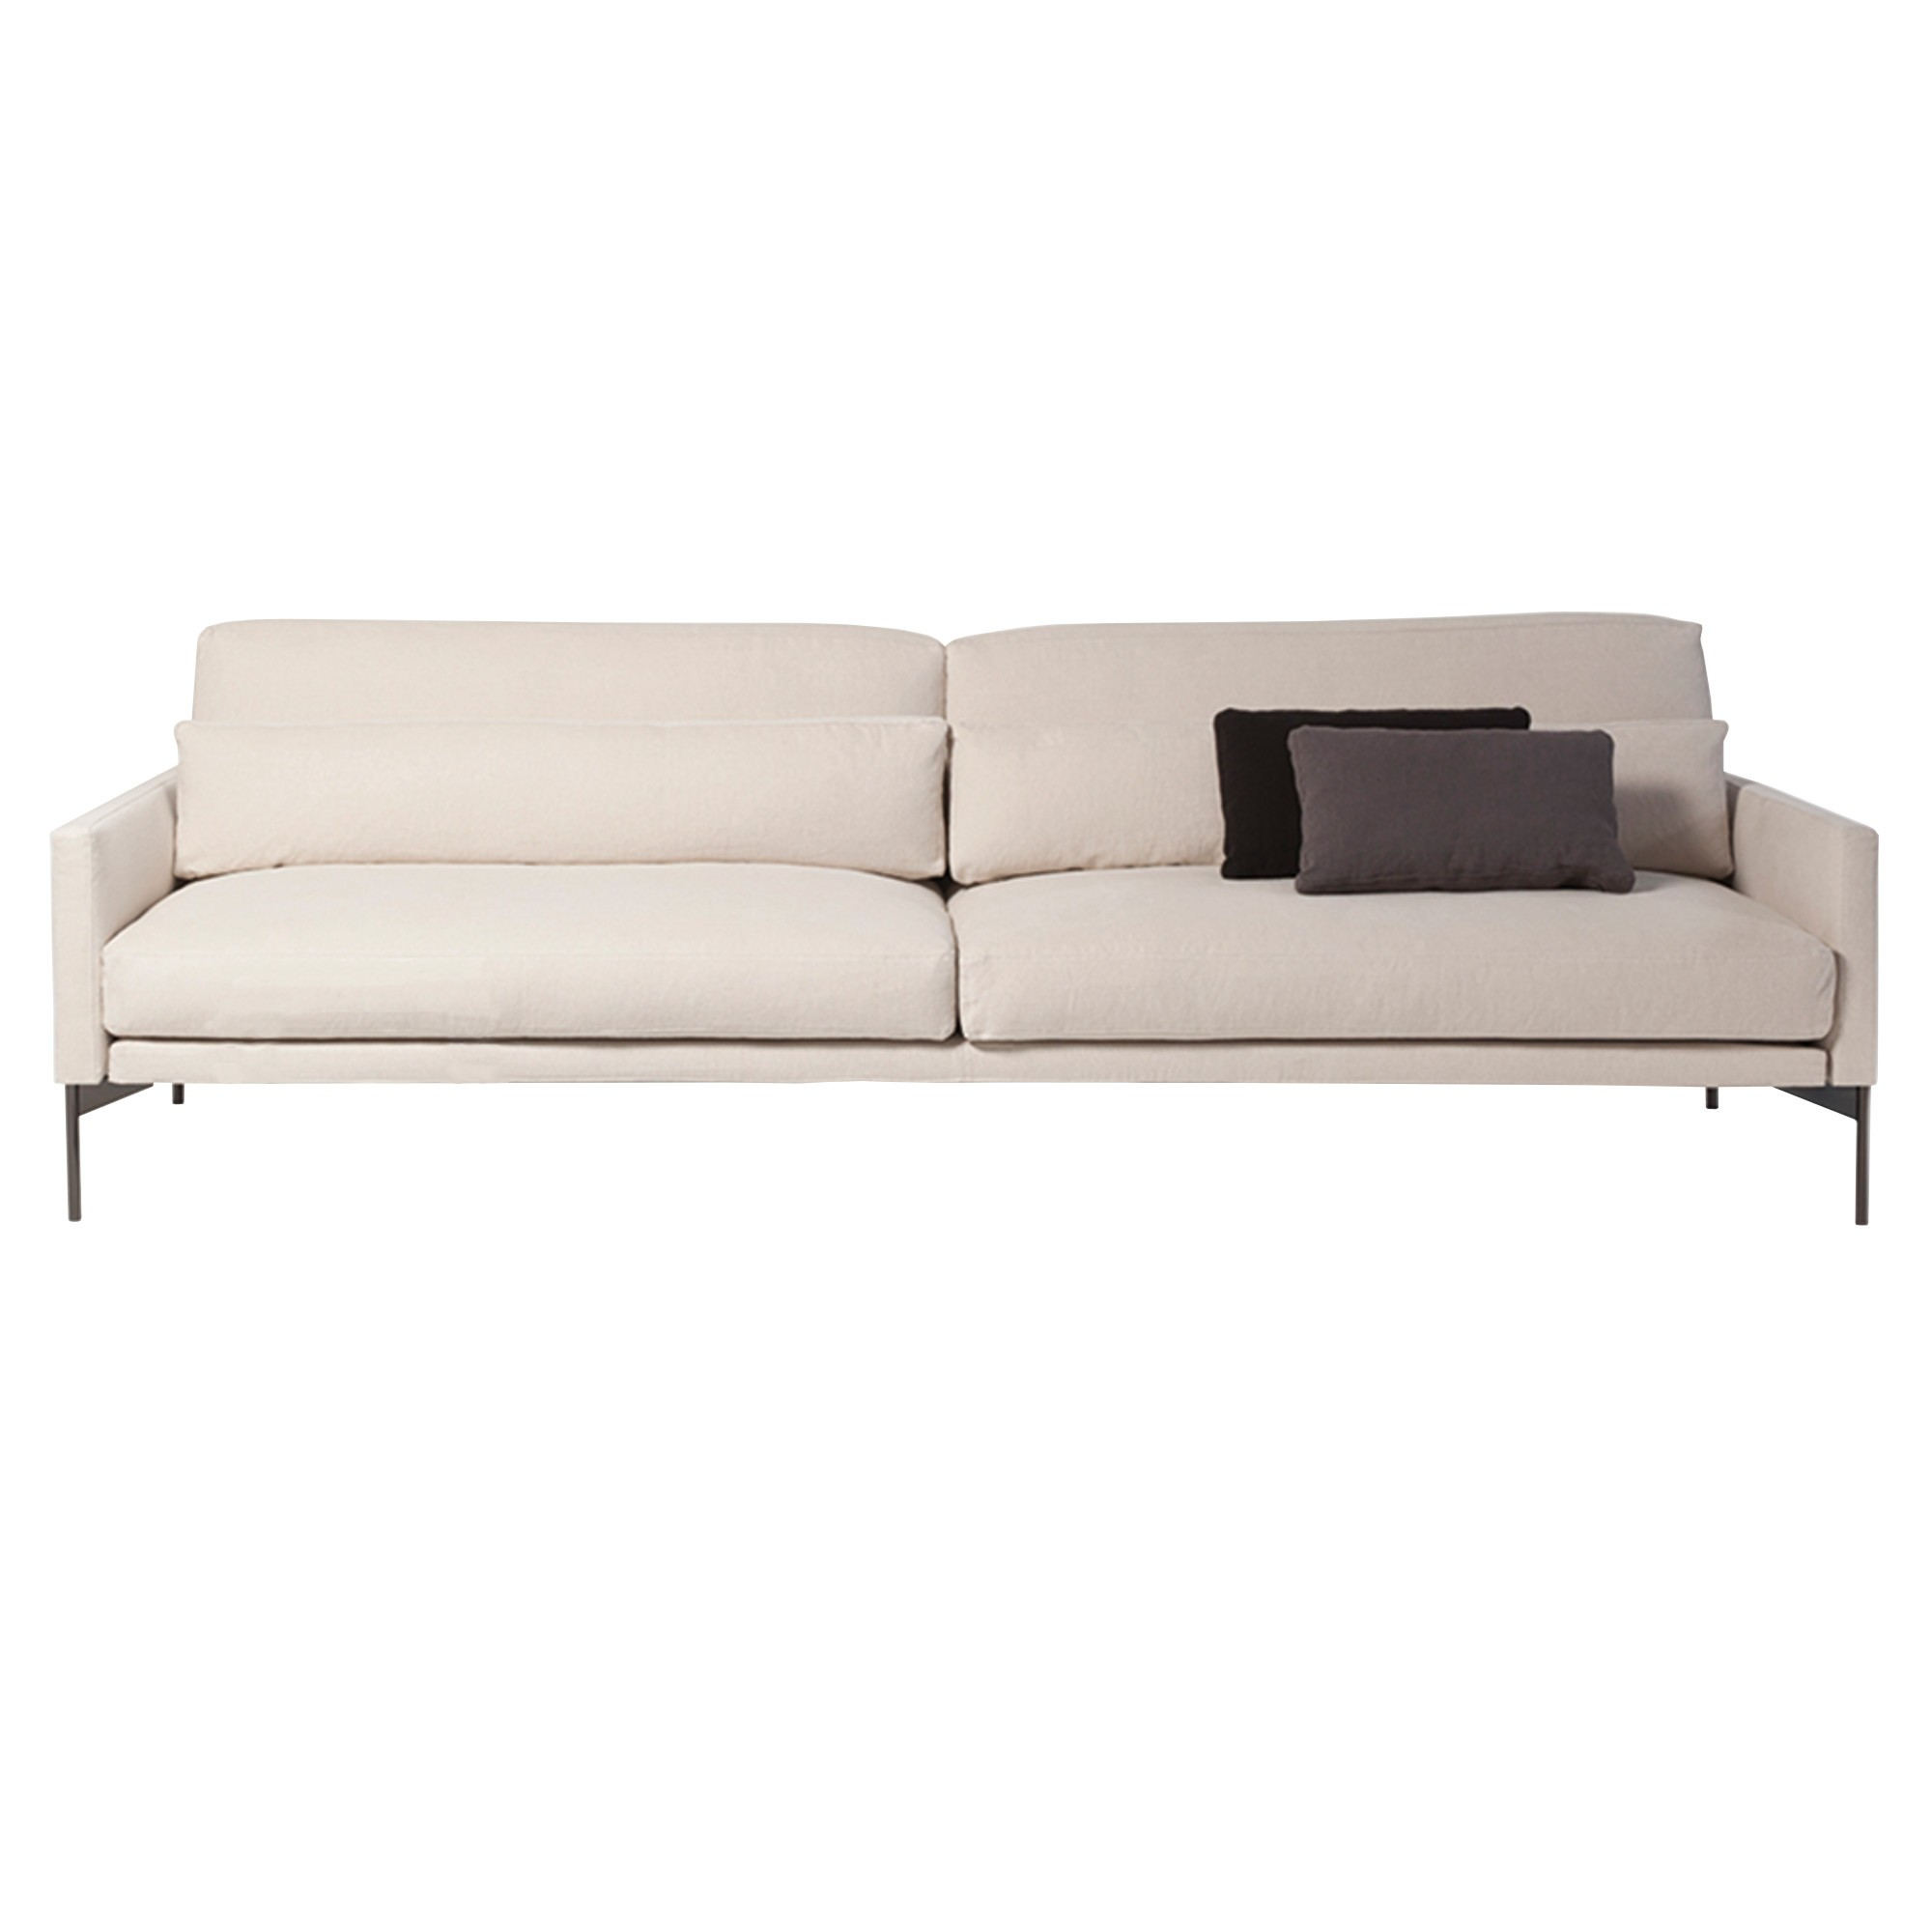 Modern Linear Sofas Armchairs And